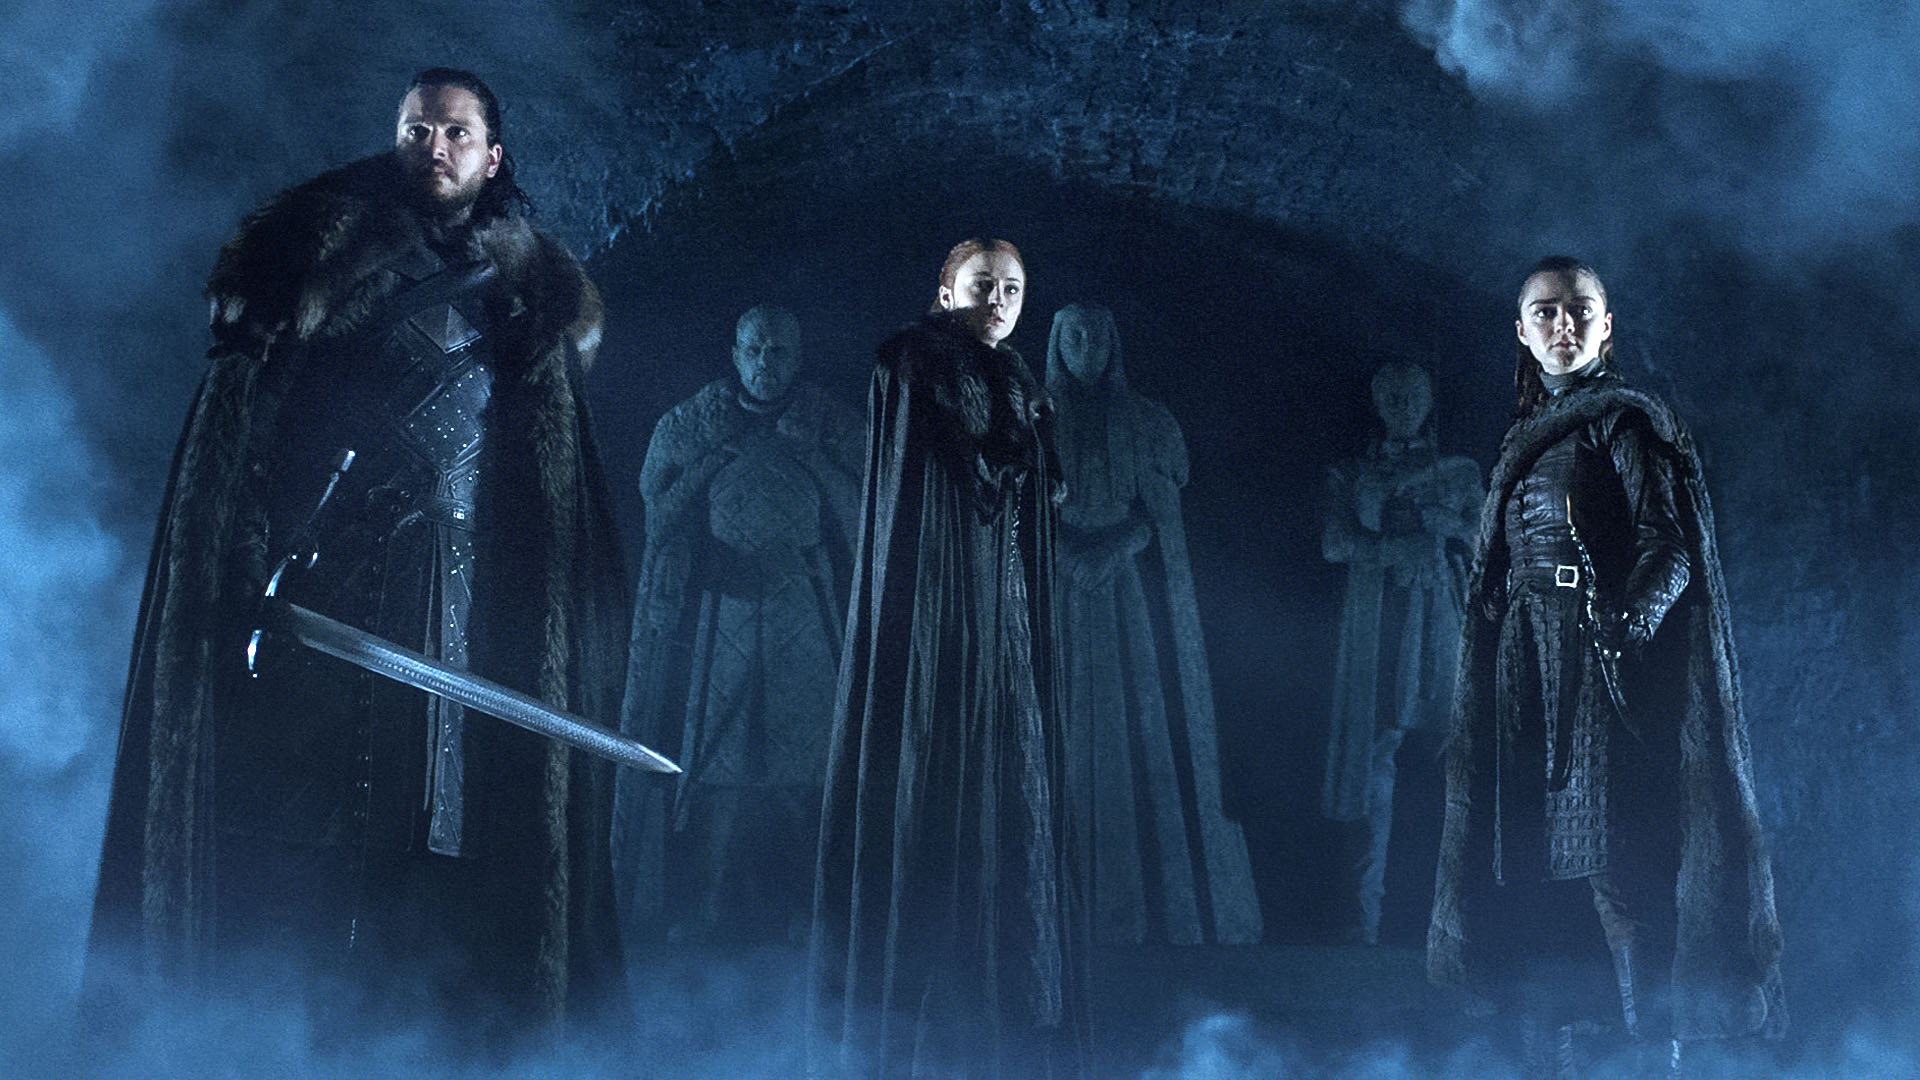 2019 Game Of Thrones Season 8 Hd Tv Shows 4k Wallpapers